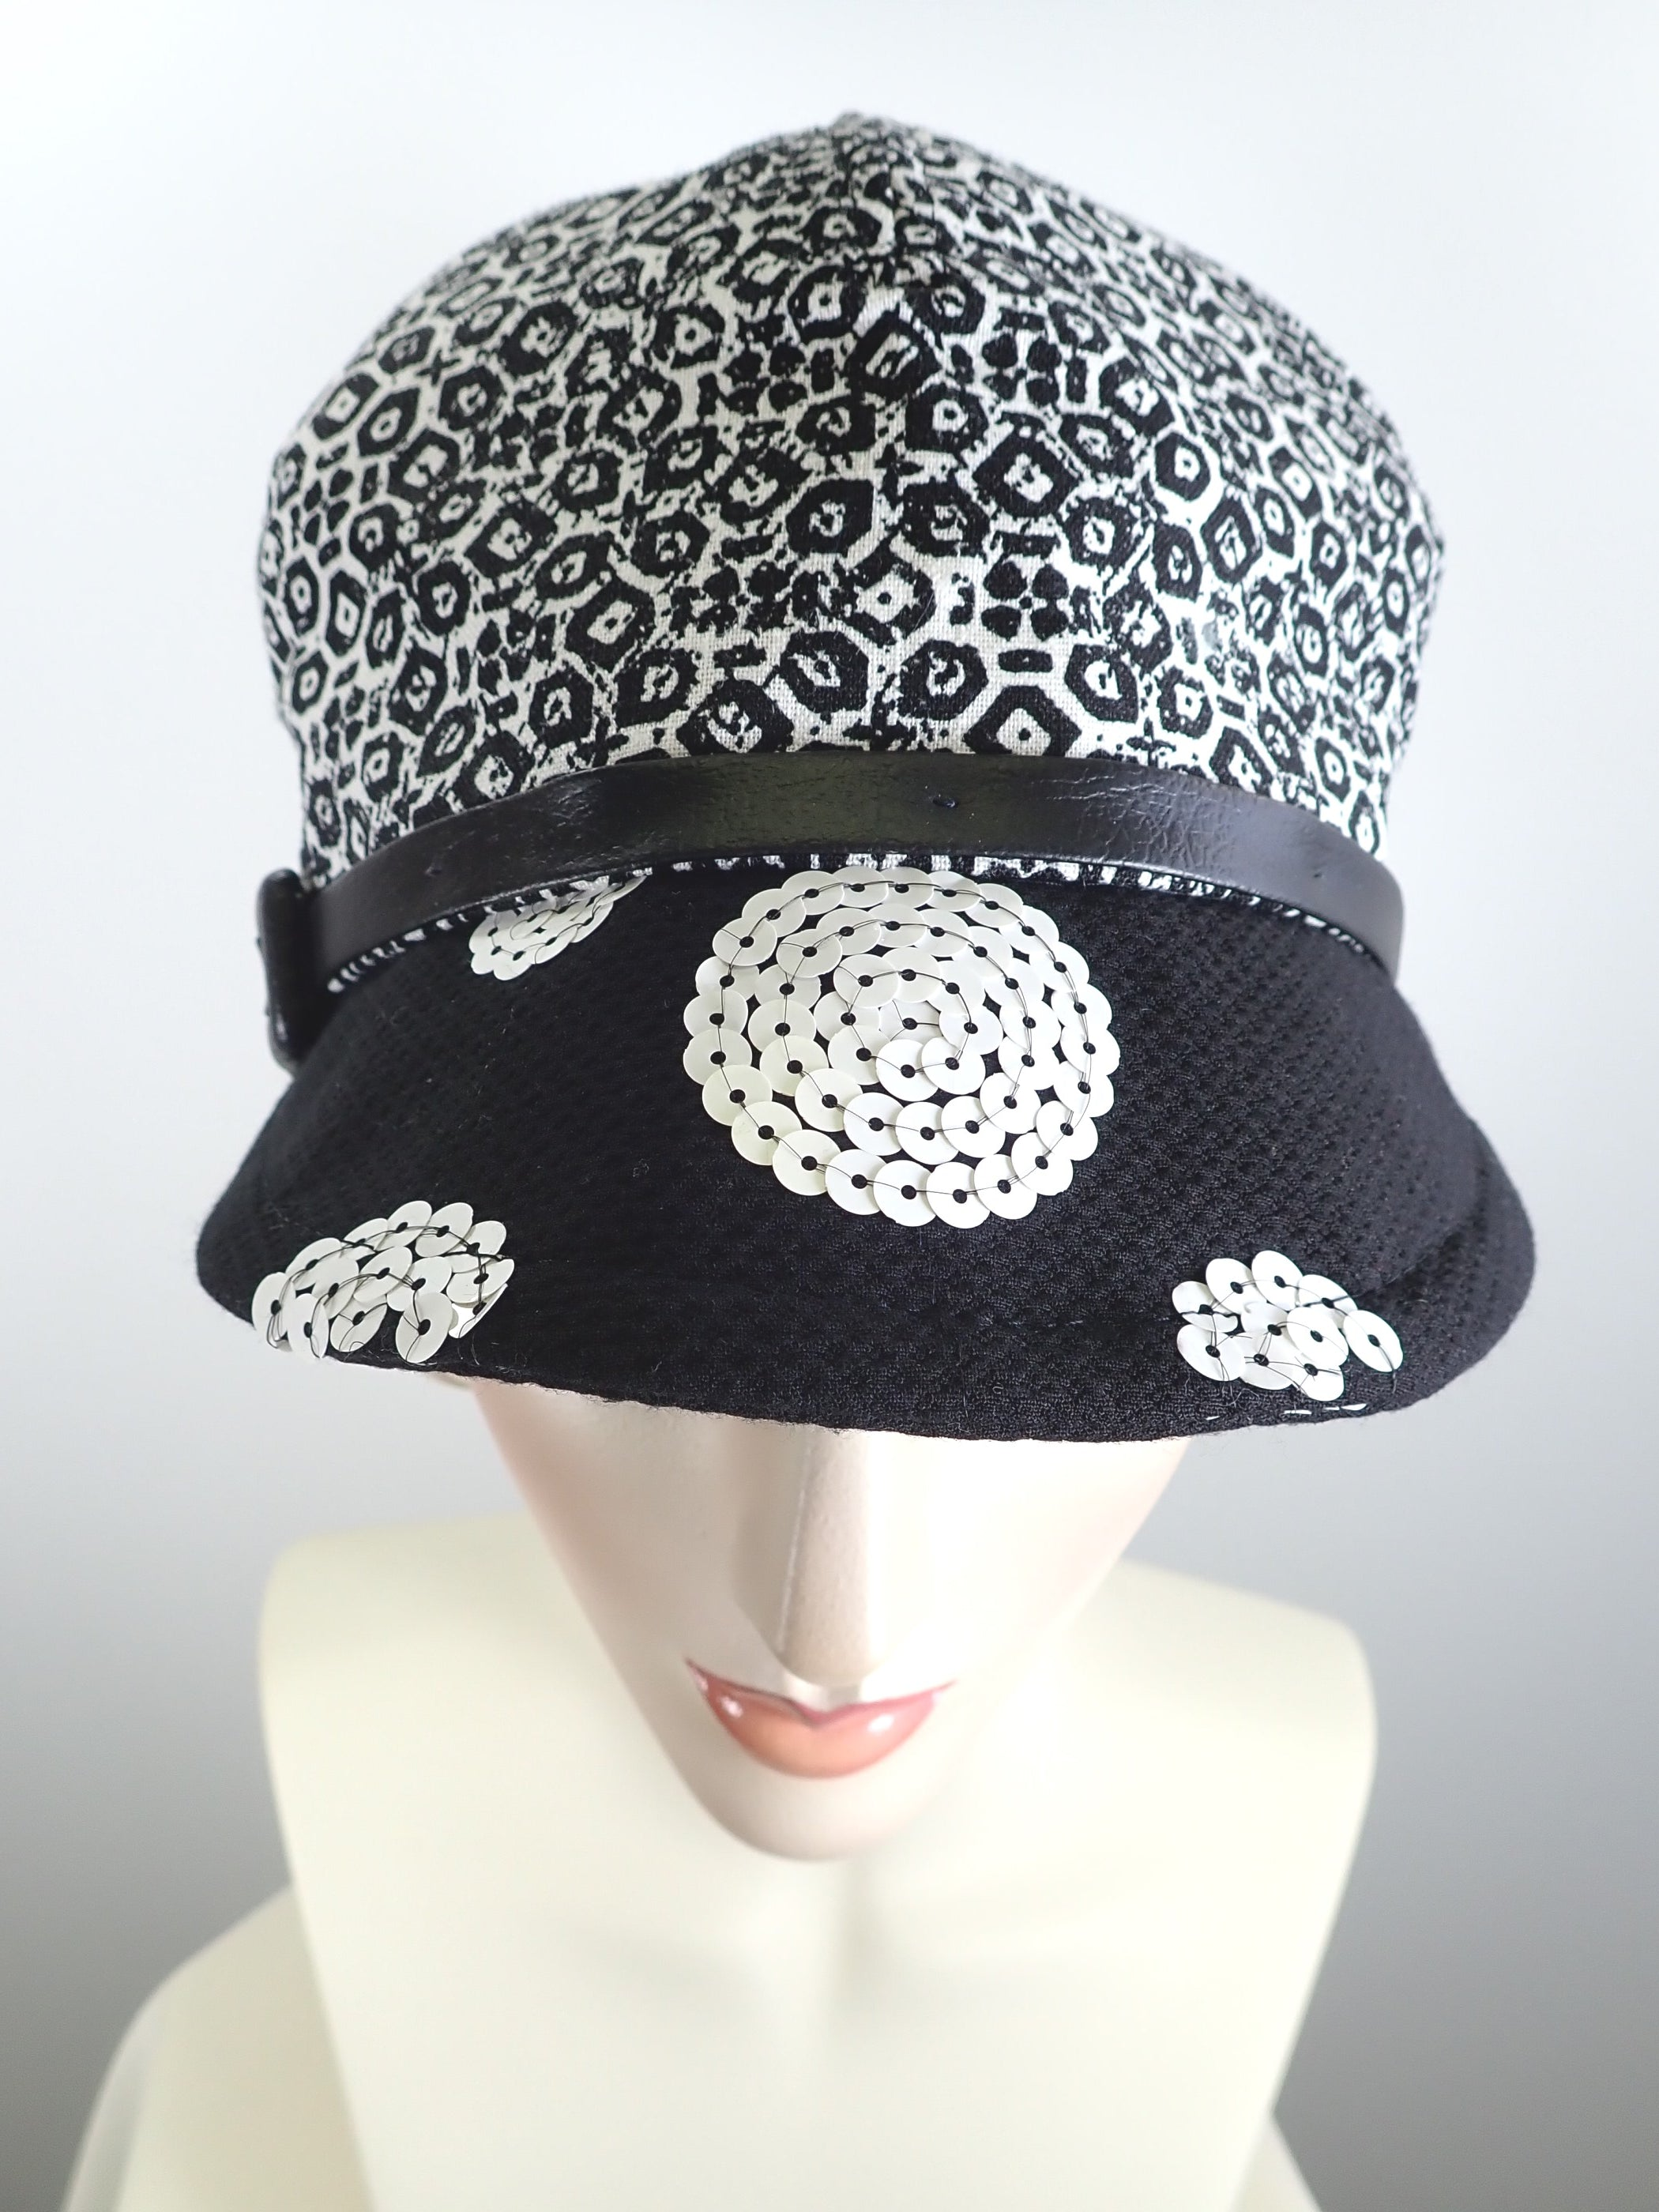 Womens Summer Hat Black and White. Linen Baseball Newsboy Cap. Womens Visor Hat. Travel Cap. Summer Cool Linen Hat. Casual eco friendly hat.